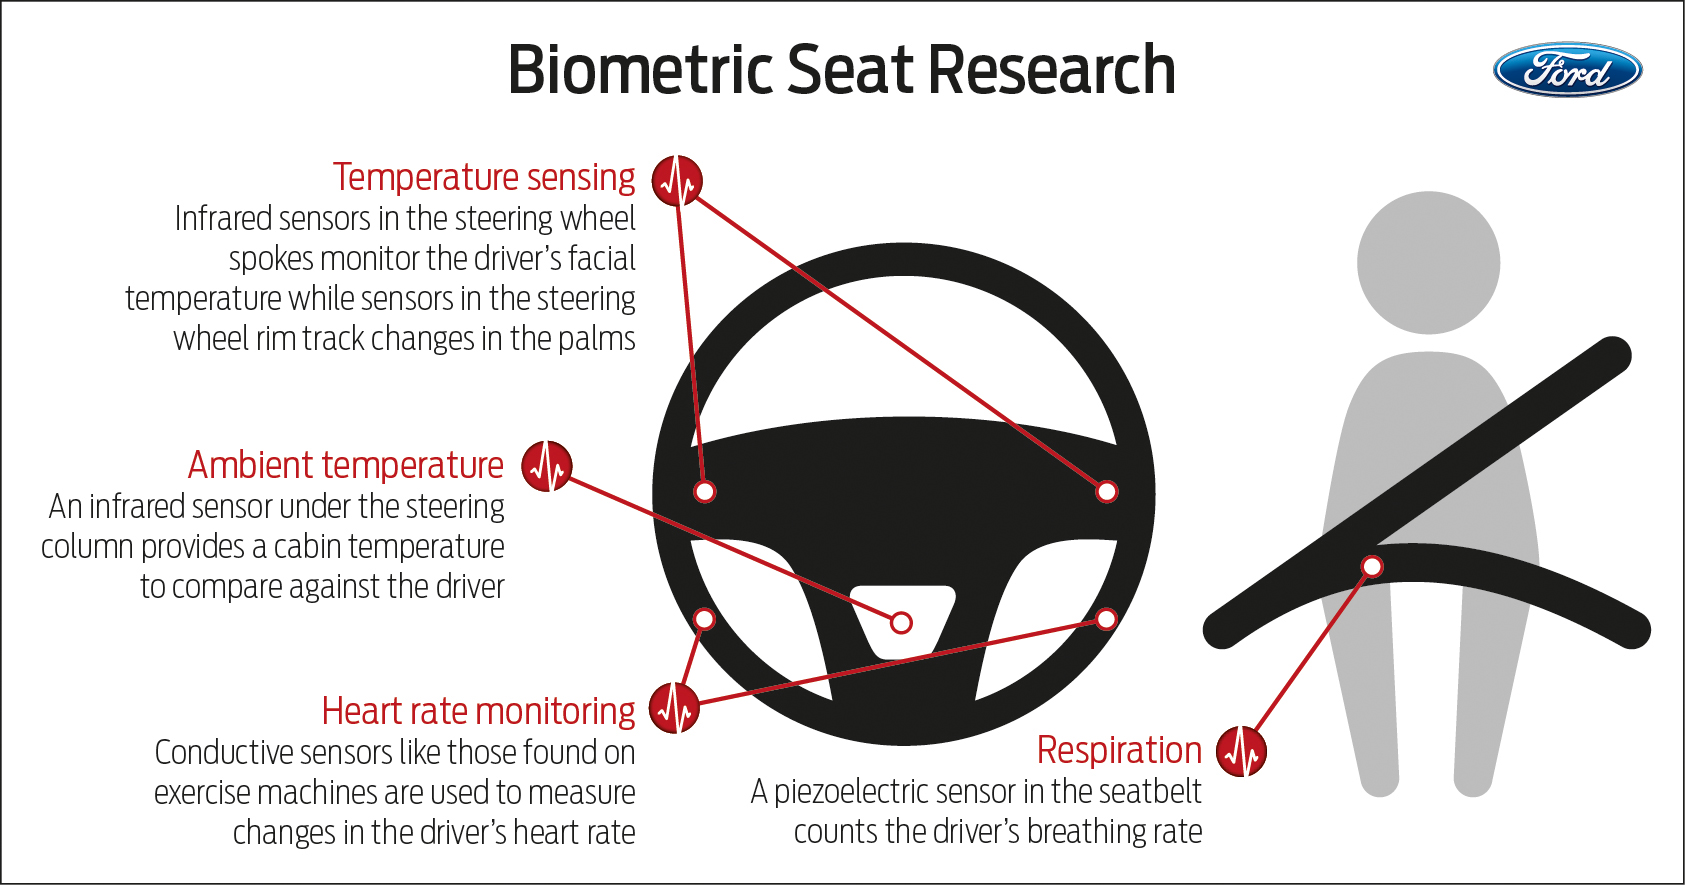 Biometric Seat Research infographic